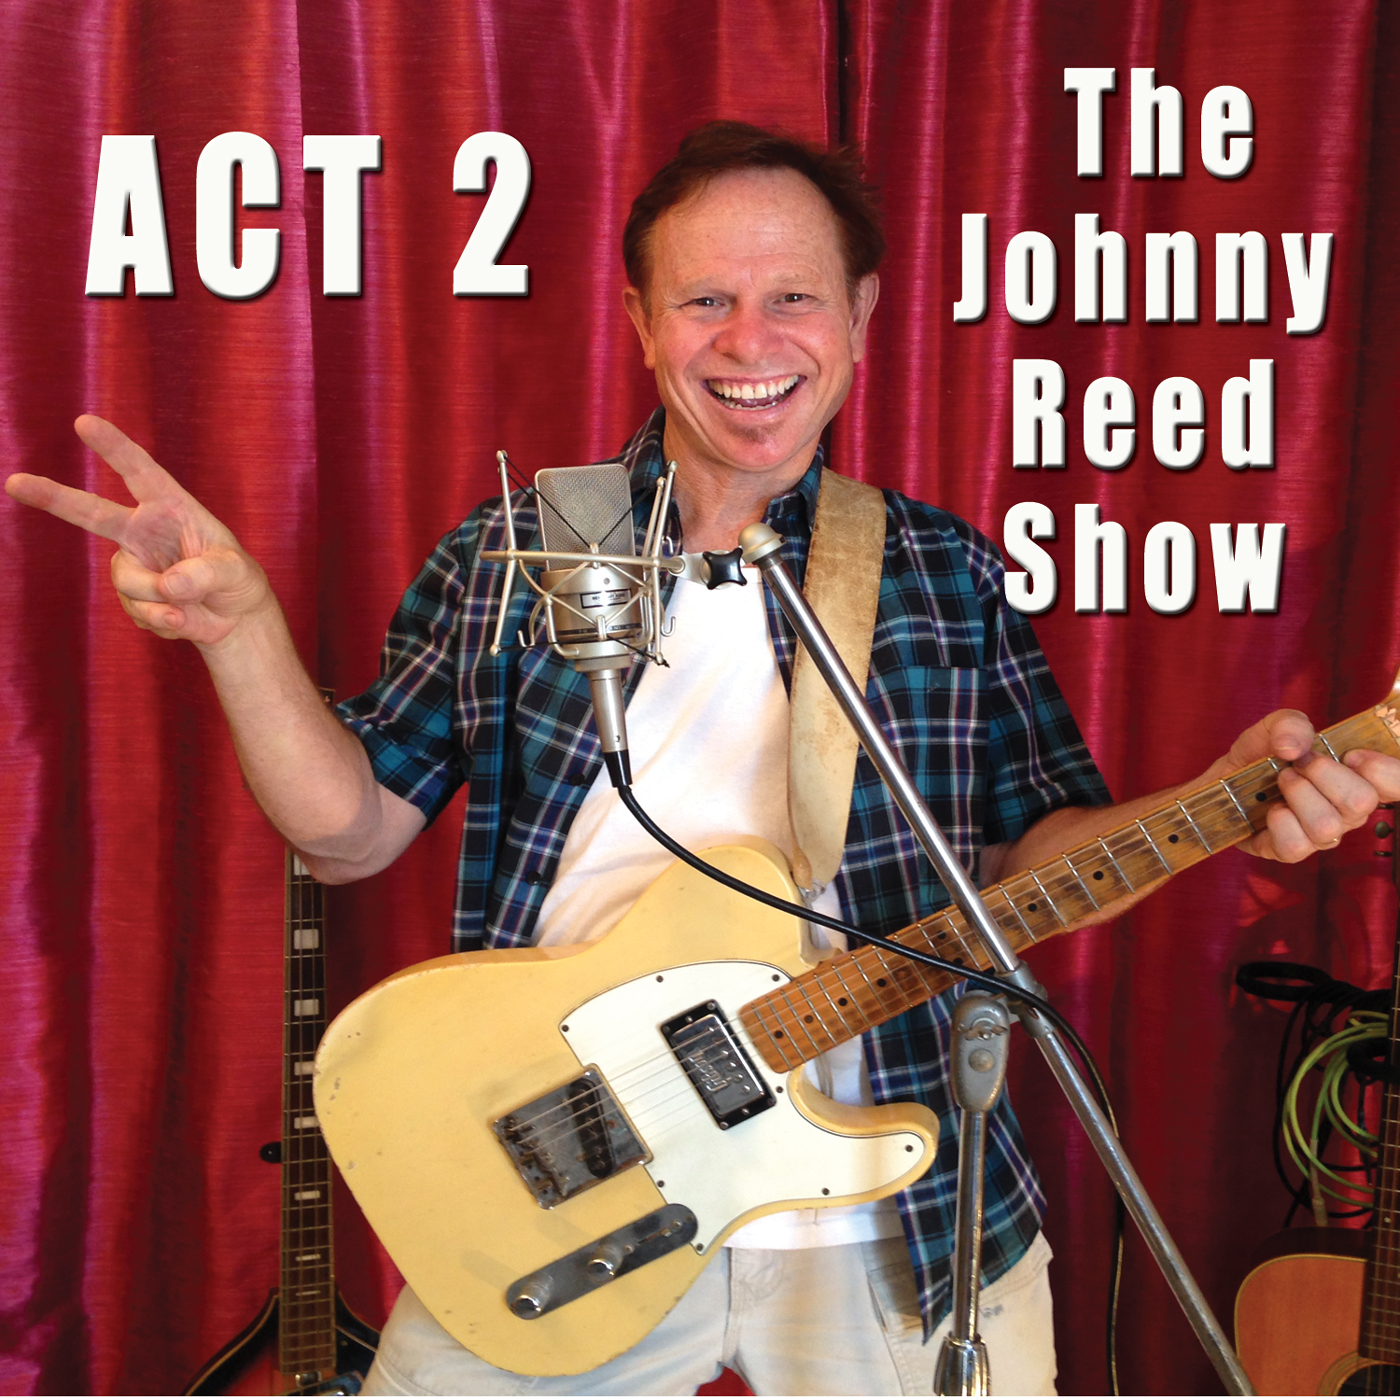 ACT-2 The Johnny Reed Show CD Cover 1400